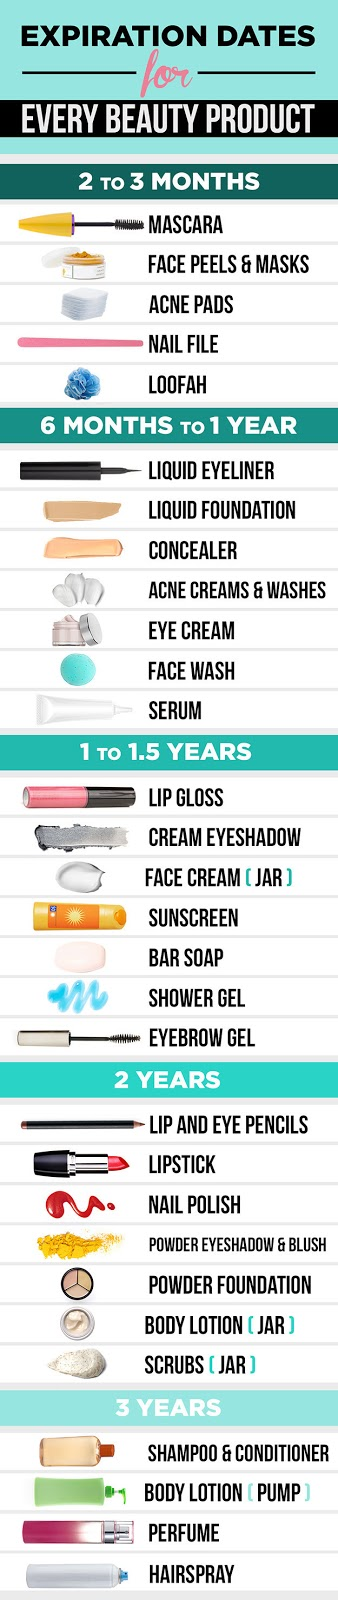 Expiration Dates for every beauty product..